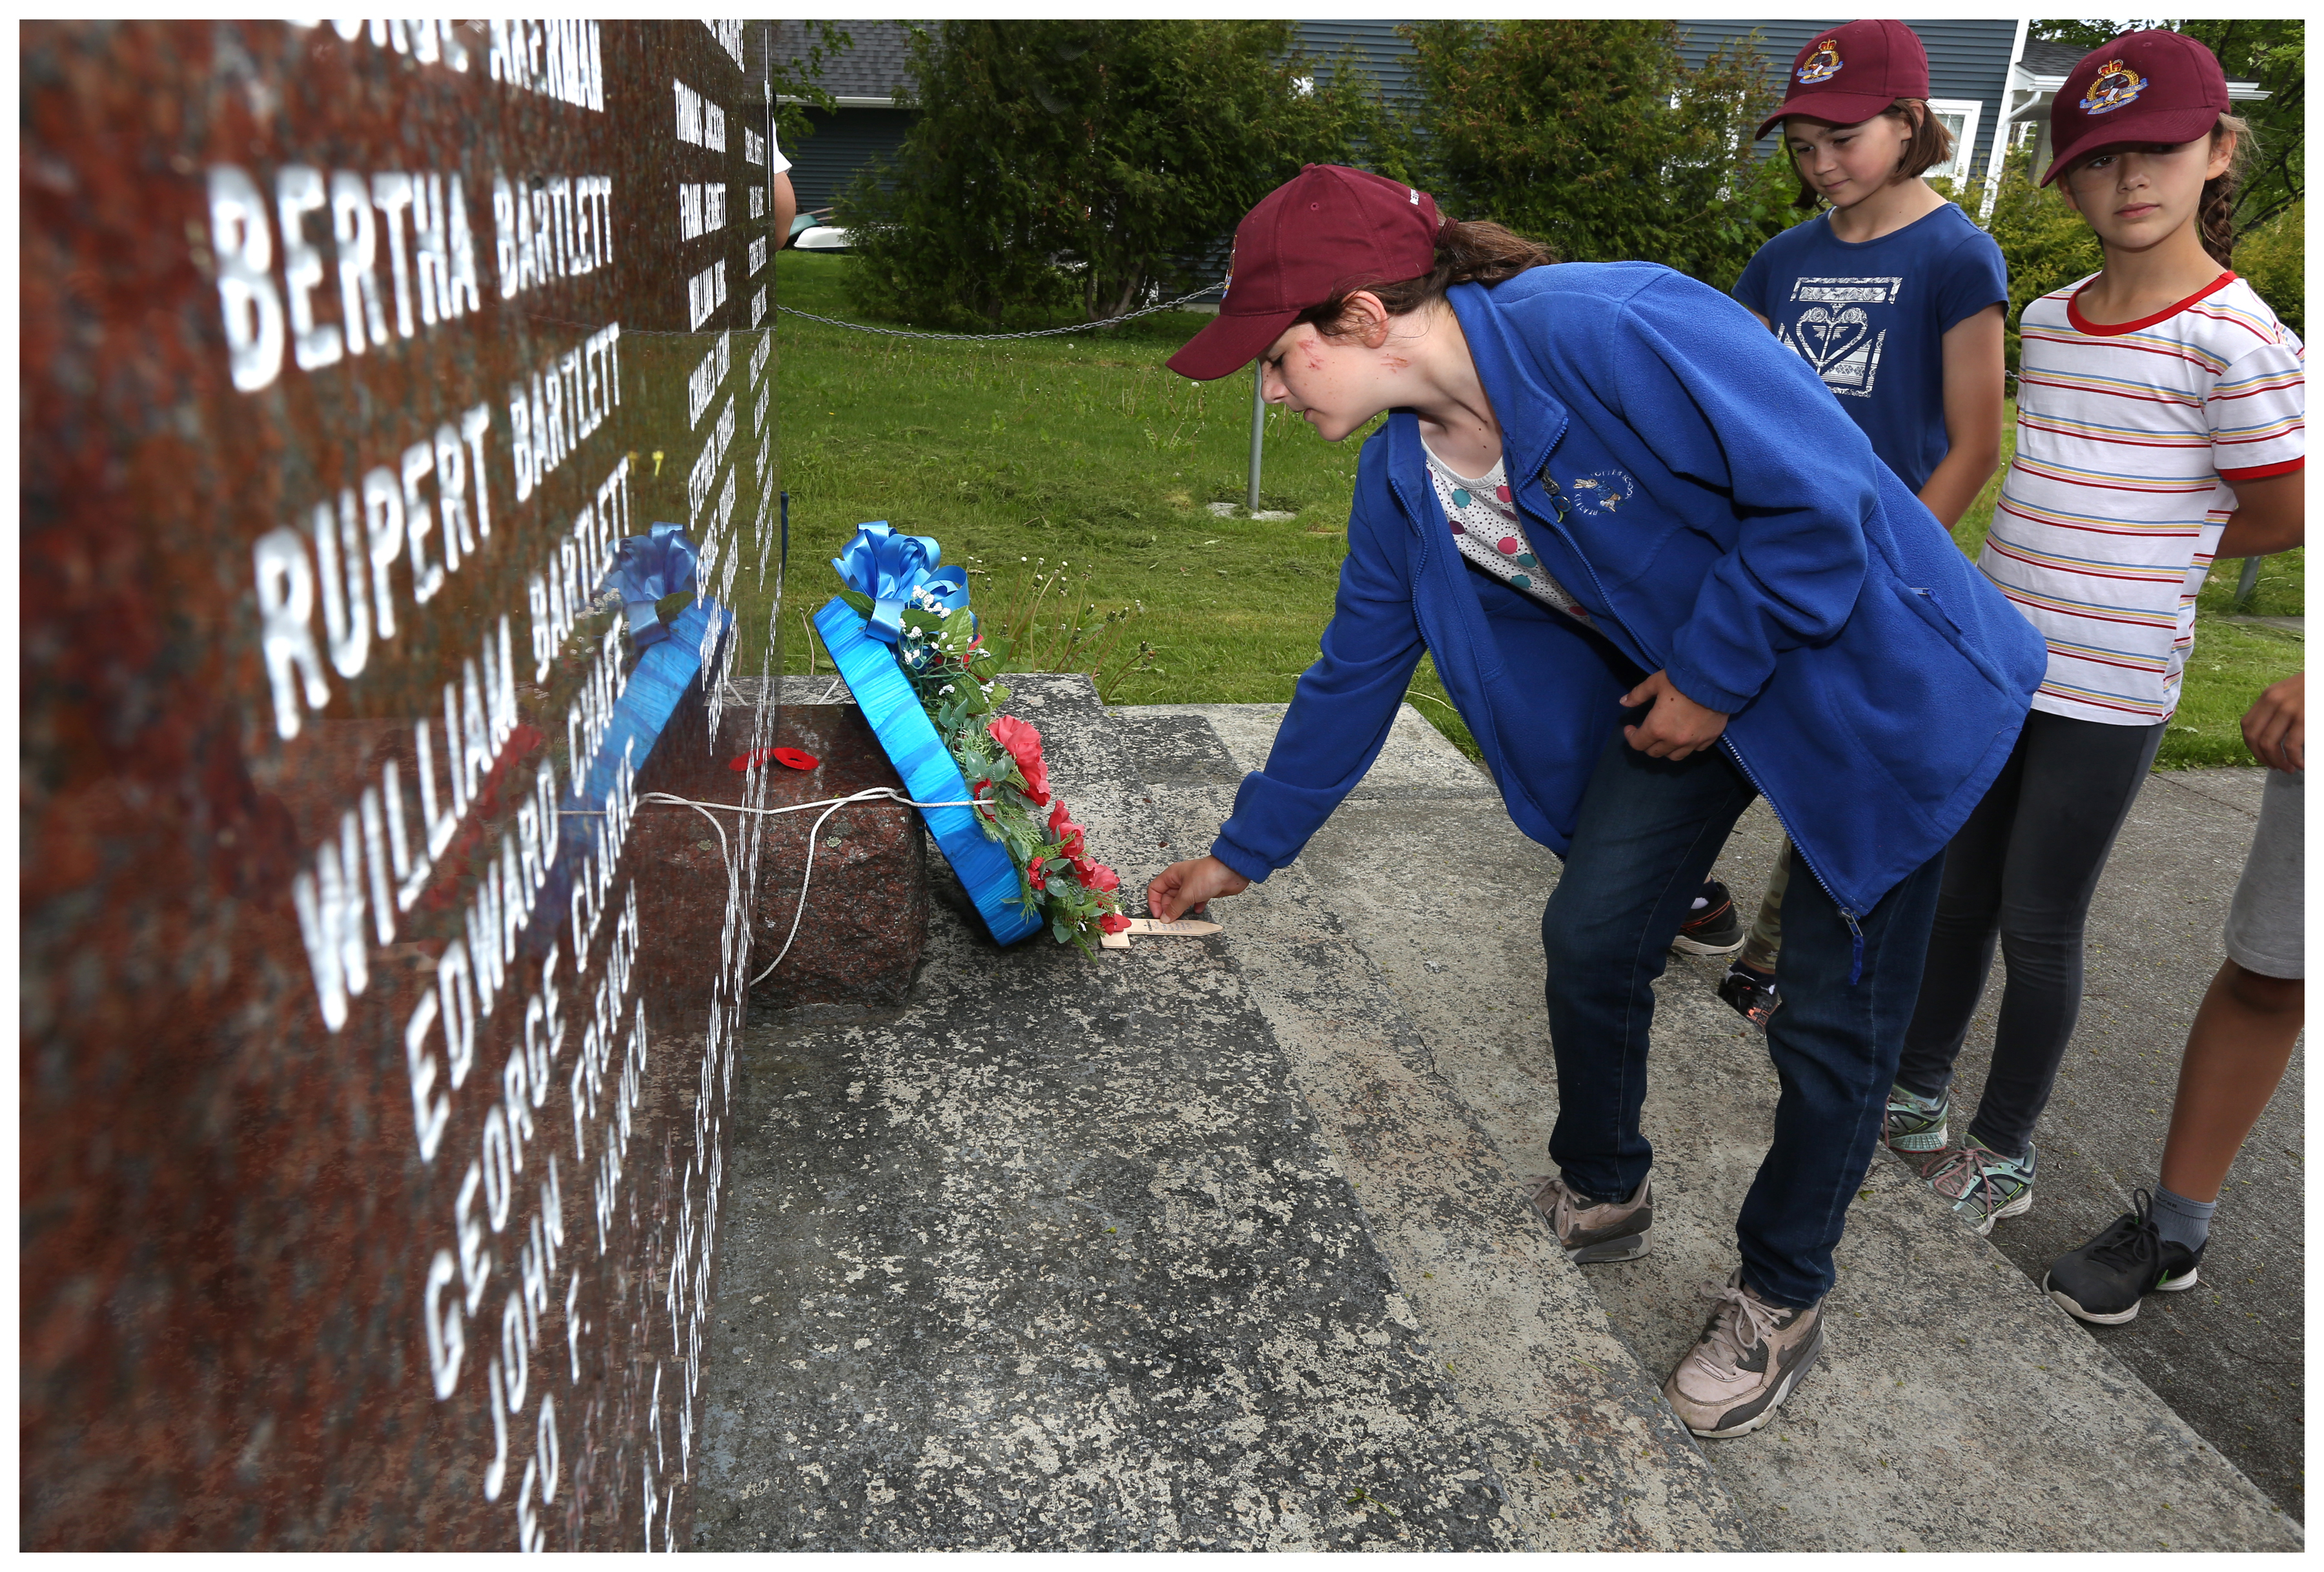 Alice Goldberger, observed by Zoe Spenceley (left) and Sophia Anderson, leaves a cross they made for nurse Bertha Barrett at the War Memorial in Bartlett's hometown of Brigus. (Paul Daly for CBC)